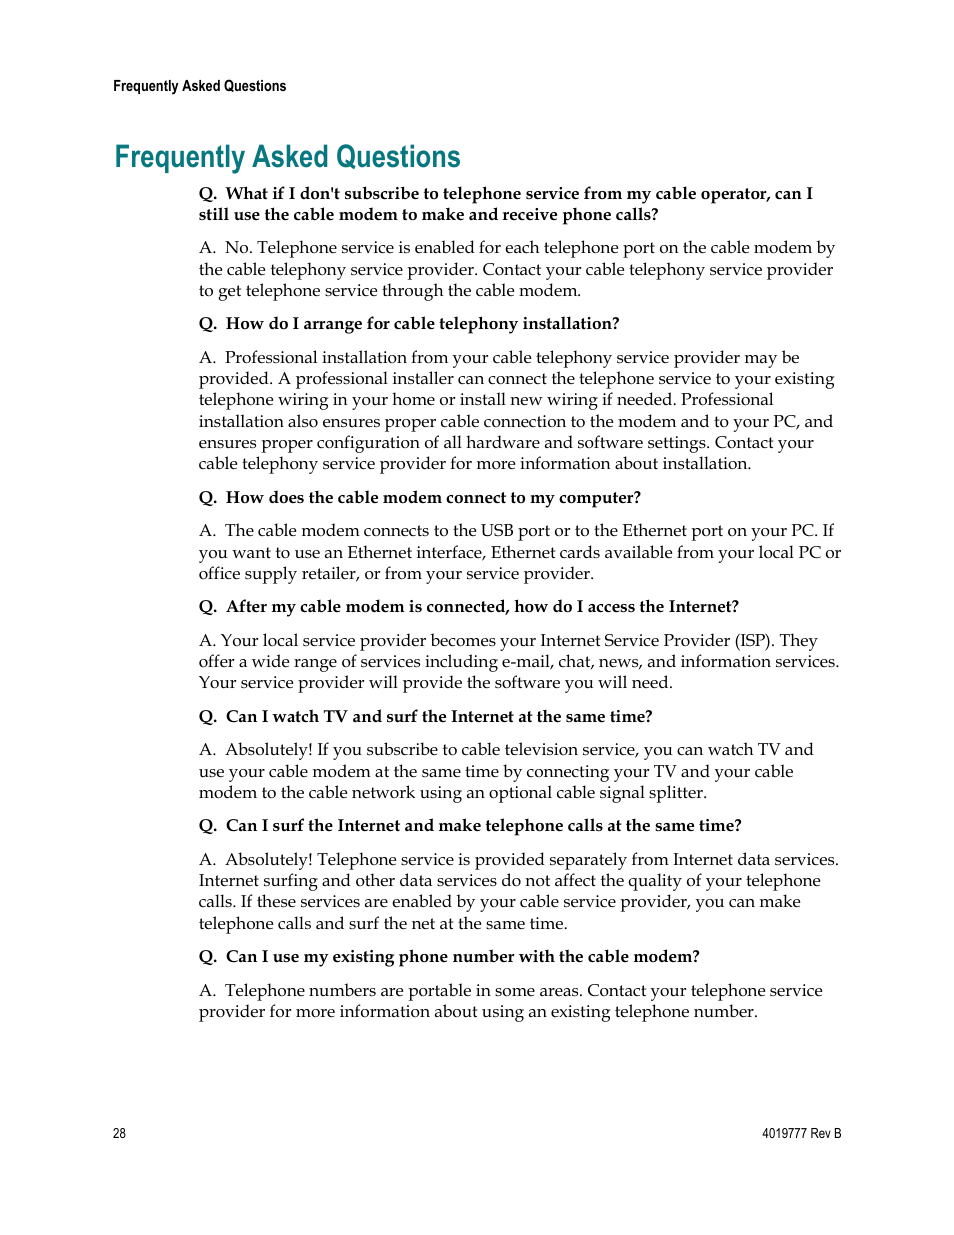 Frequently asked questions | Cisco DPQ3212 User Manual